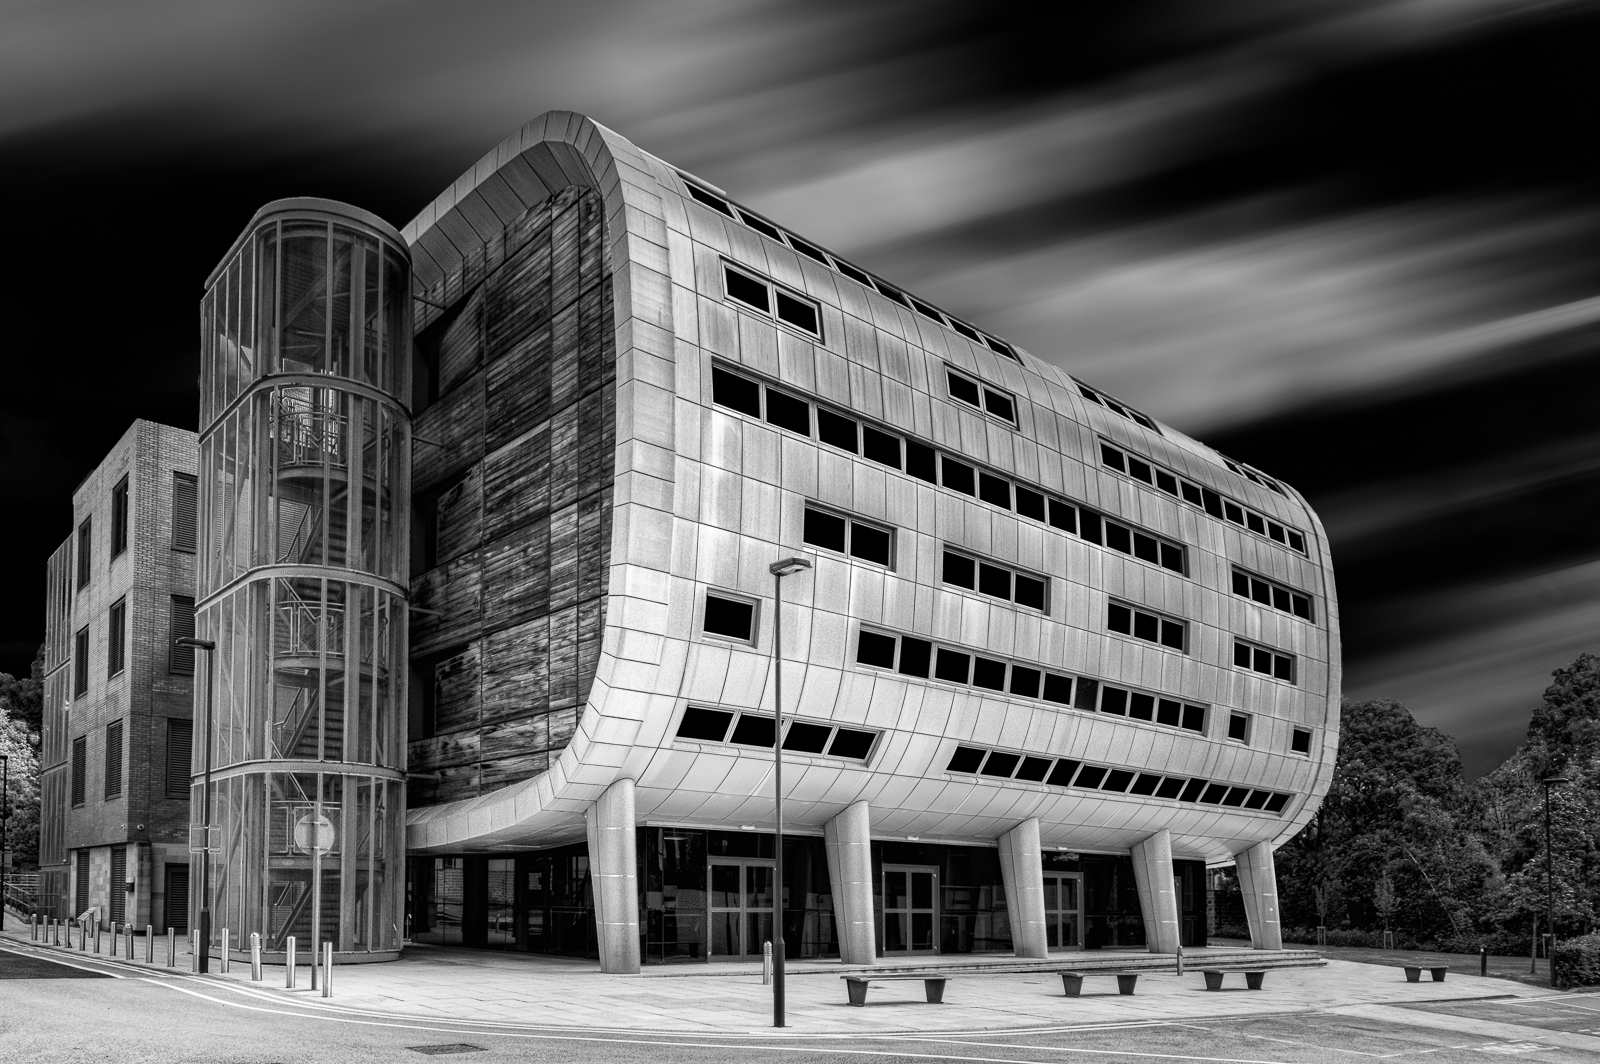 <h5>The Charles Thackrah Building Leeds University</h5><p>By Mark Seton																	</p>